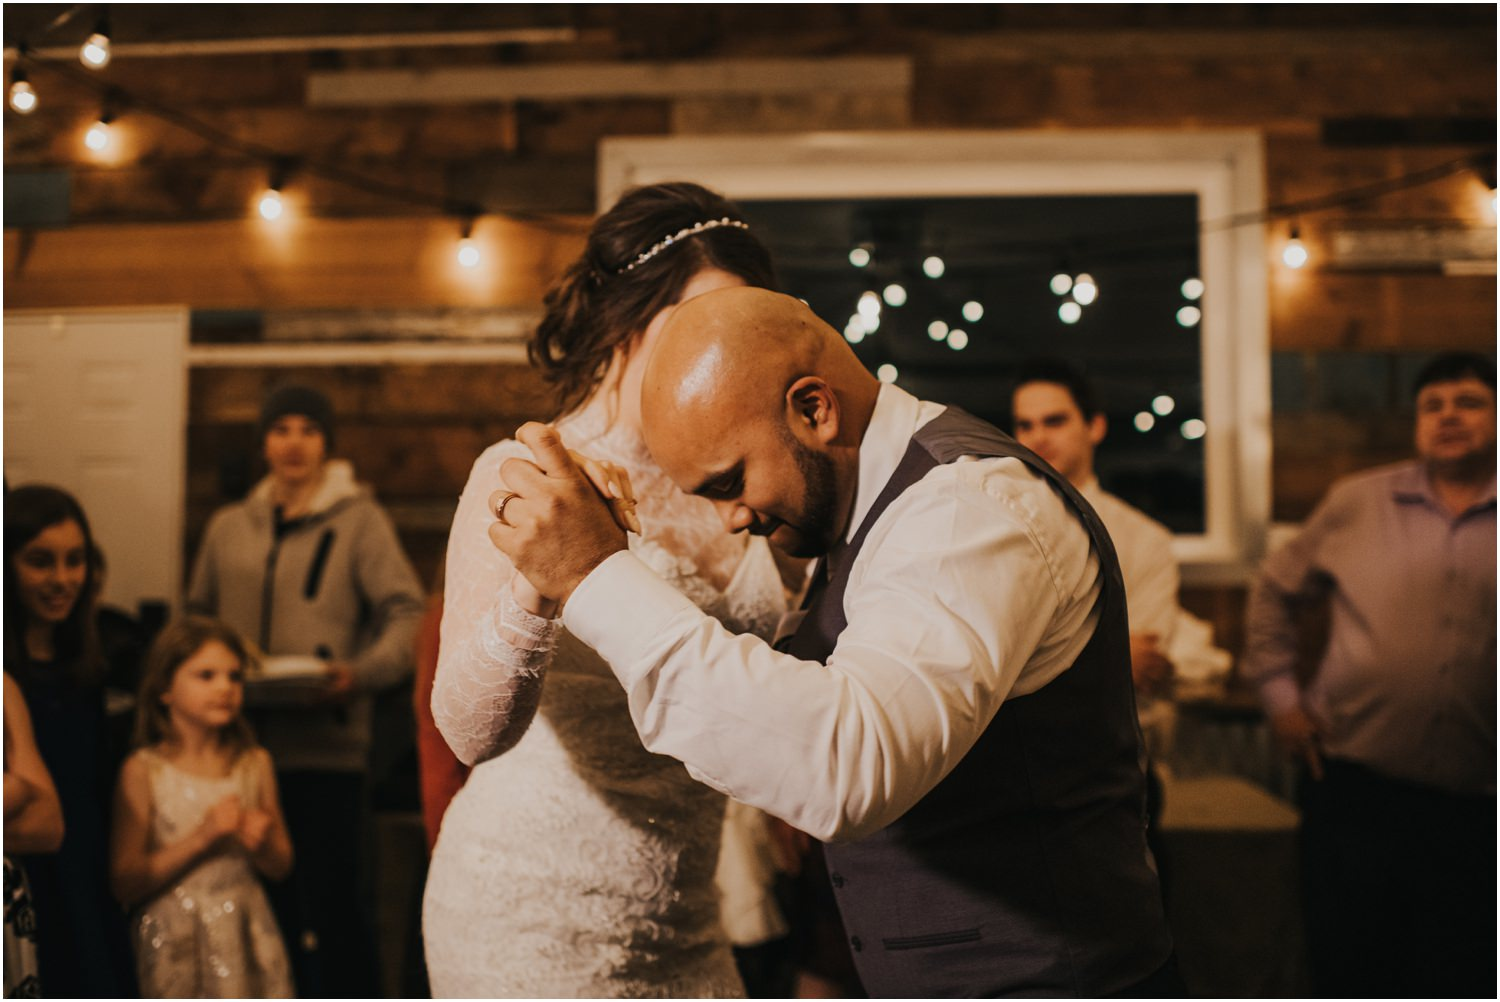 Kelowna Winter Wedding - Joelsview Photography_0151